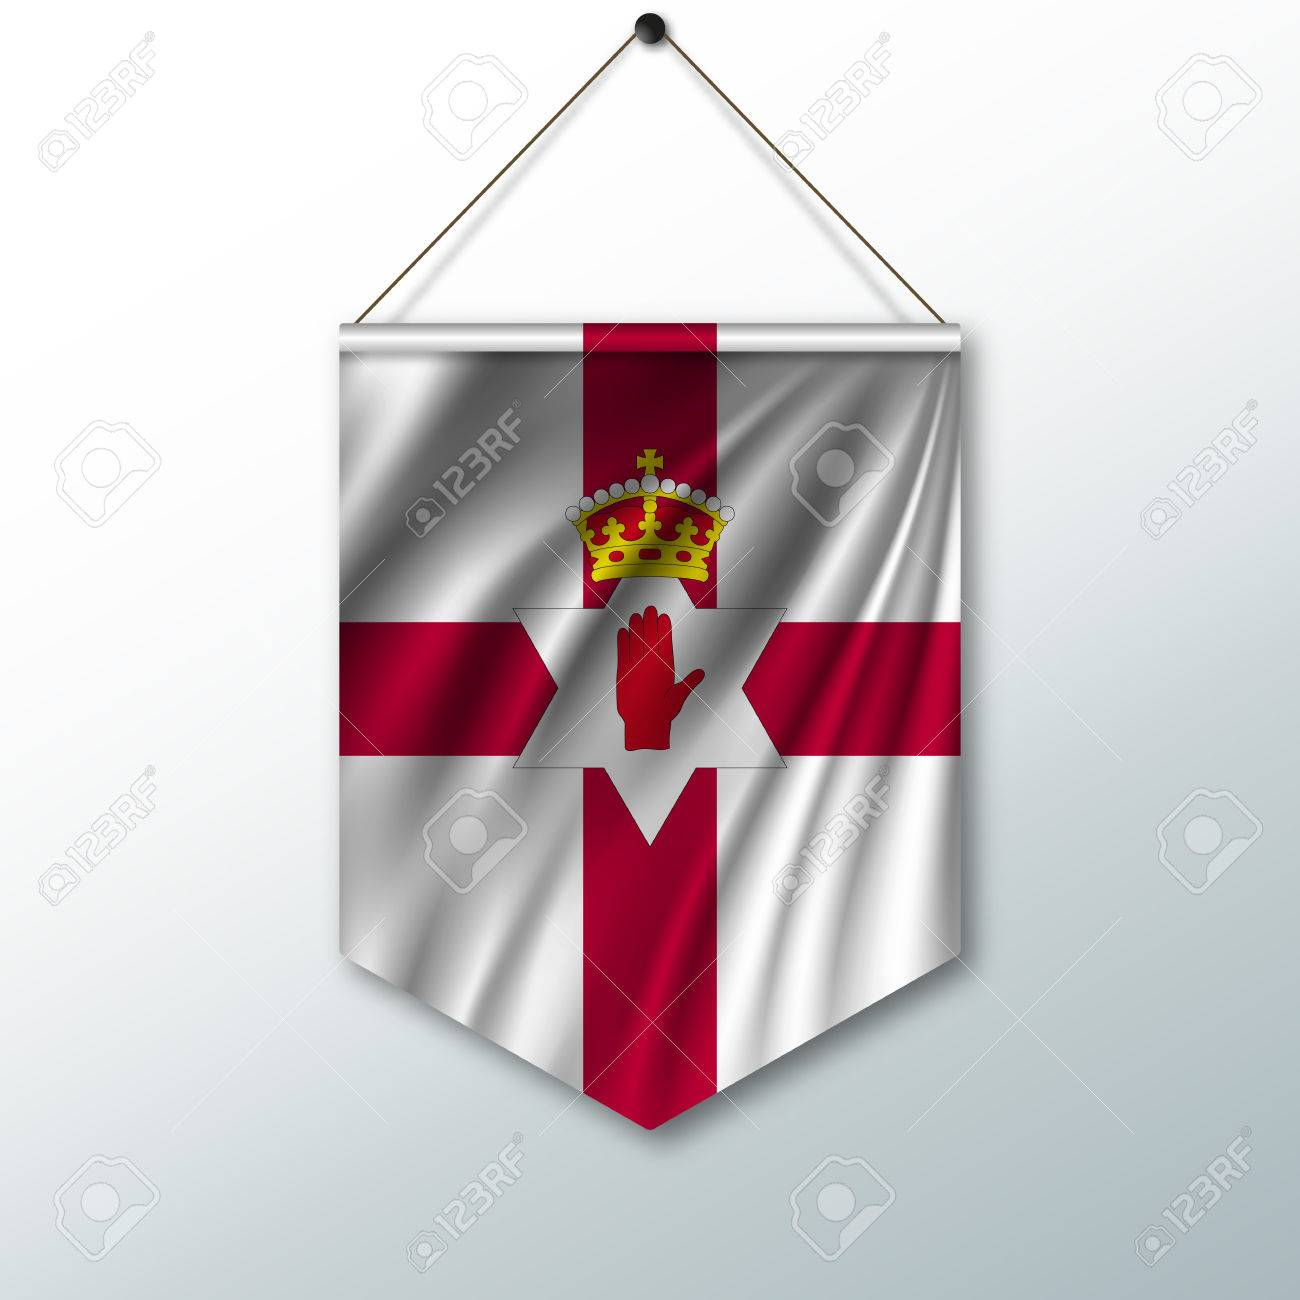 National symbol ireland images symbol and sign ideas the national flag of northern ireland the symbol of the state in the national flag of buycottarizona